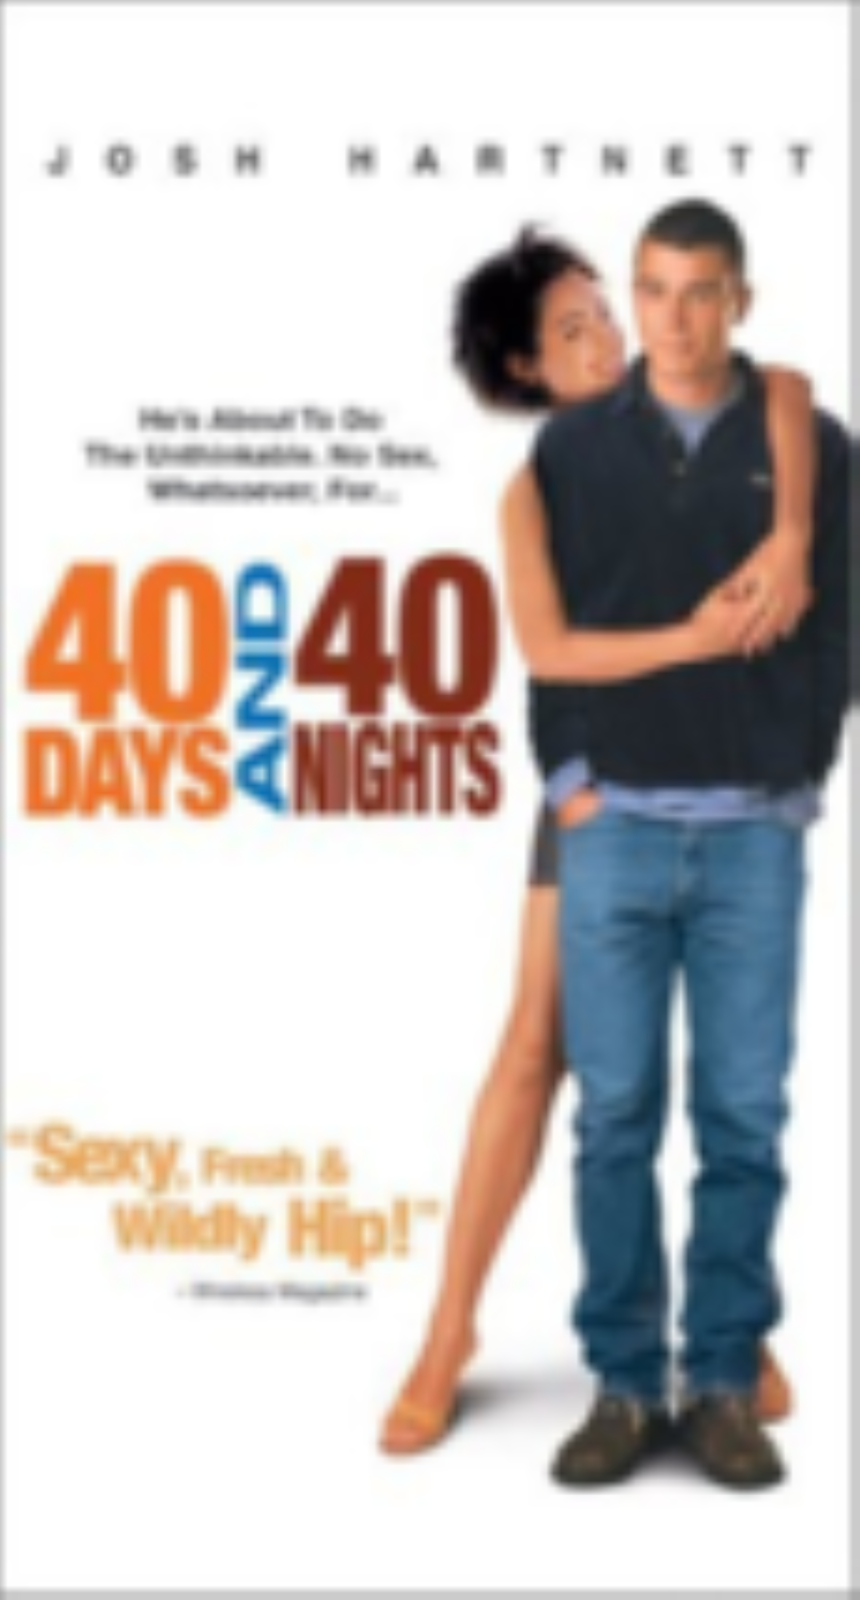 40 Days and 40 Nights Vhs